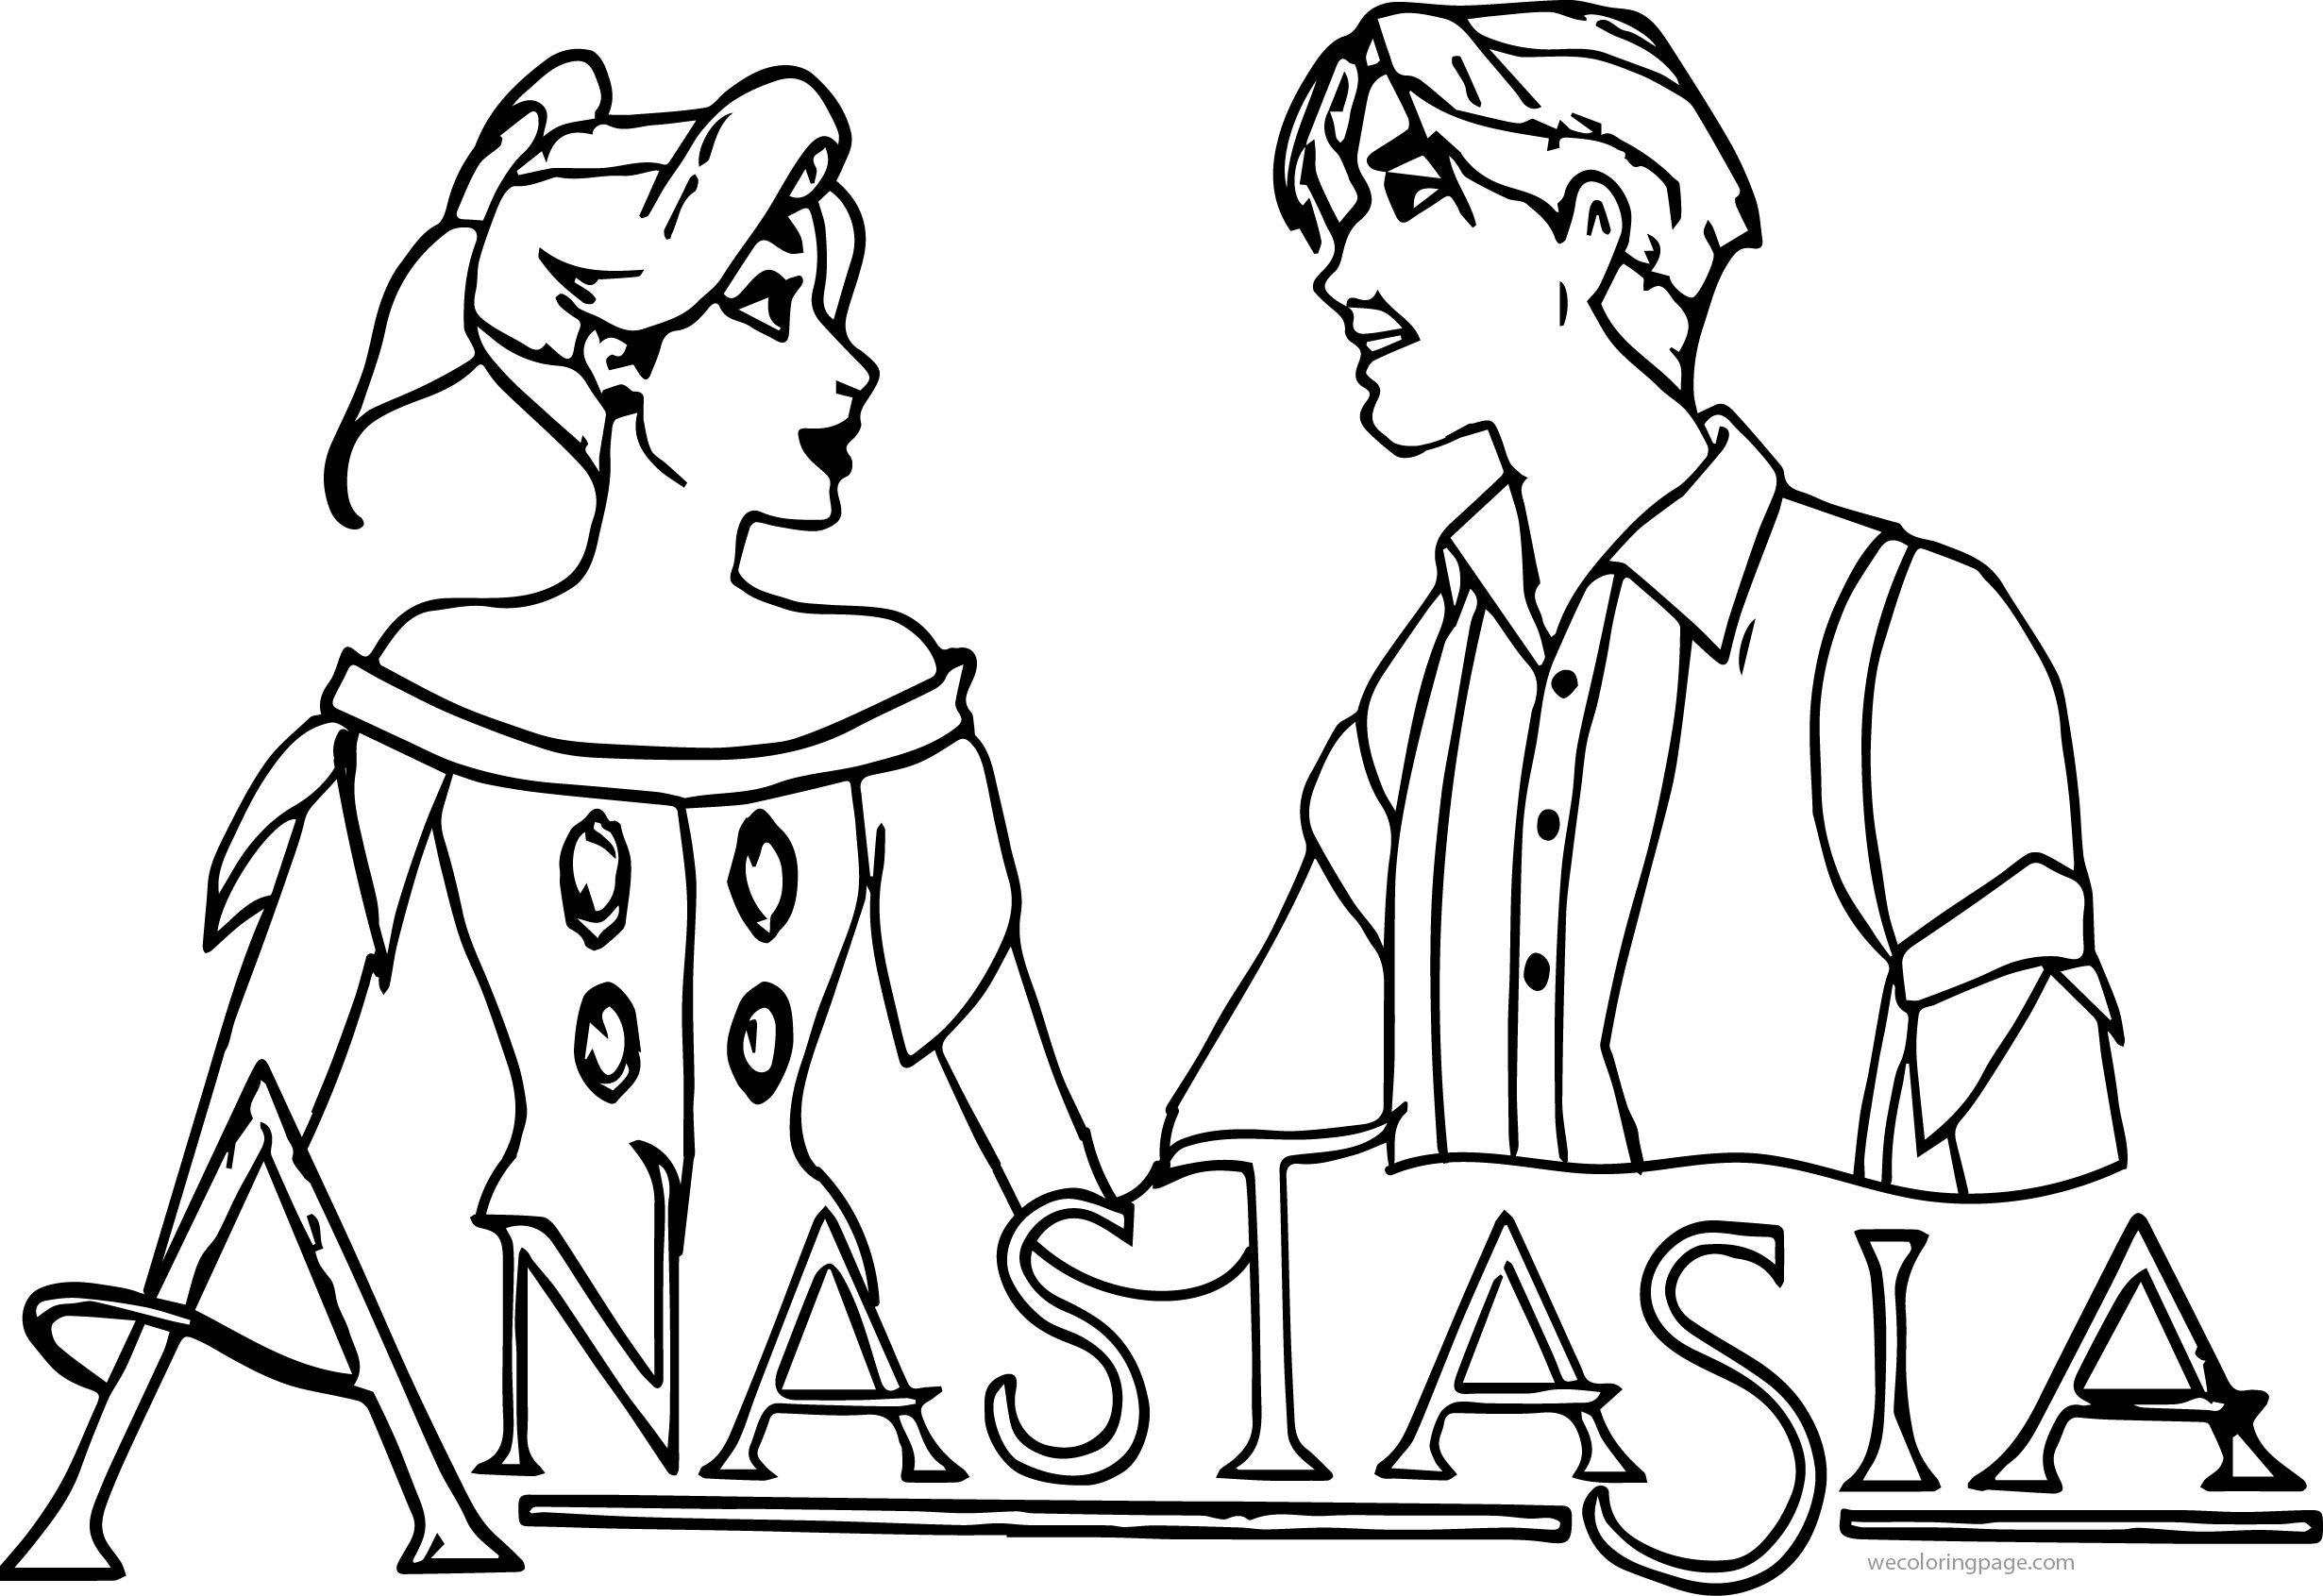 Anastasia Together Coloring Page